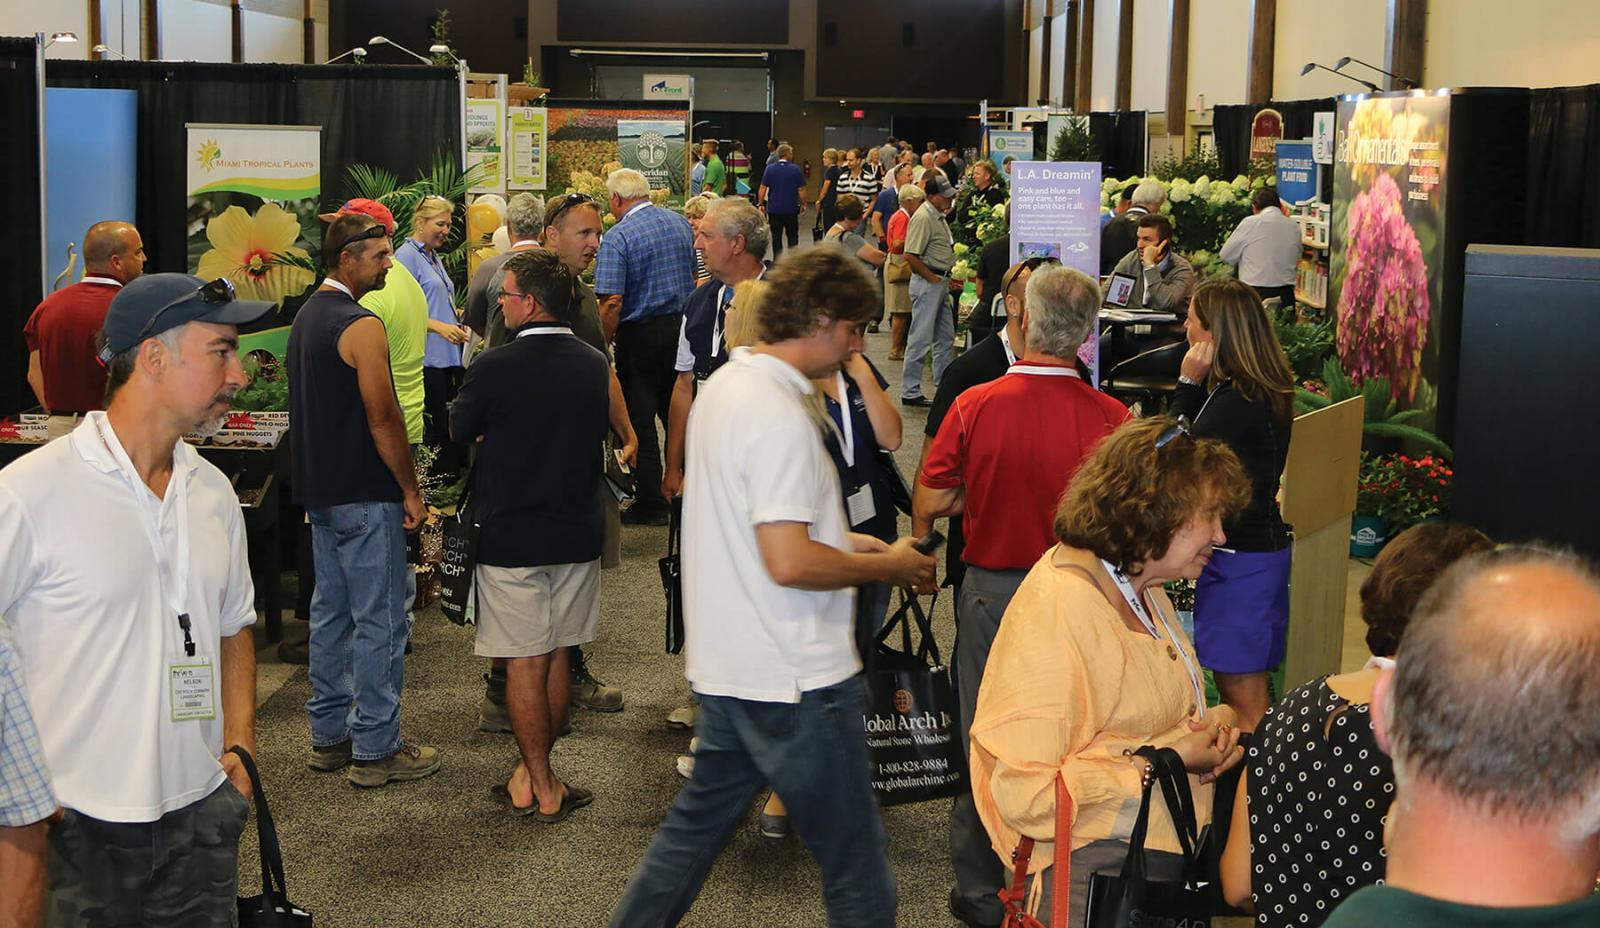 The aisles at Garden Expo's new home at the Ancaster Fairgrounds at Thrive saw good traffic on Wednesday and Thursday. The new location received positive reviews from both vendors and attendees.